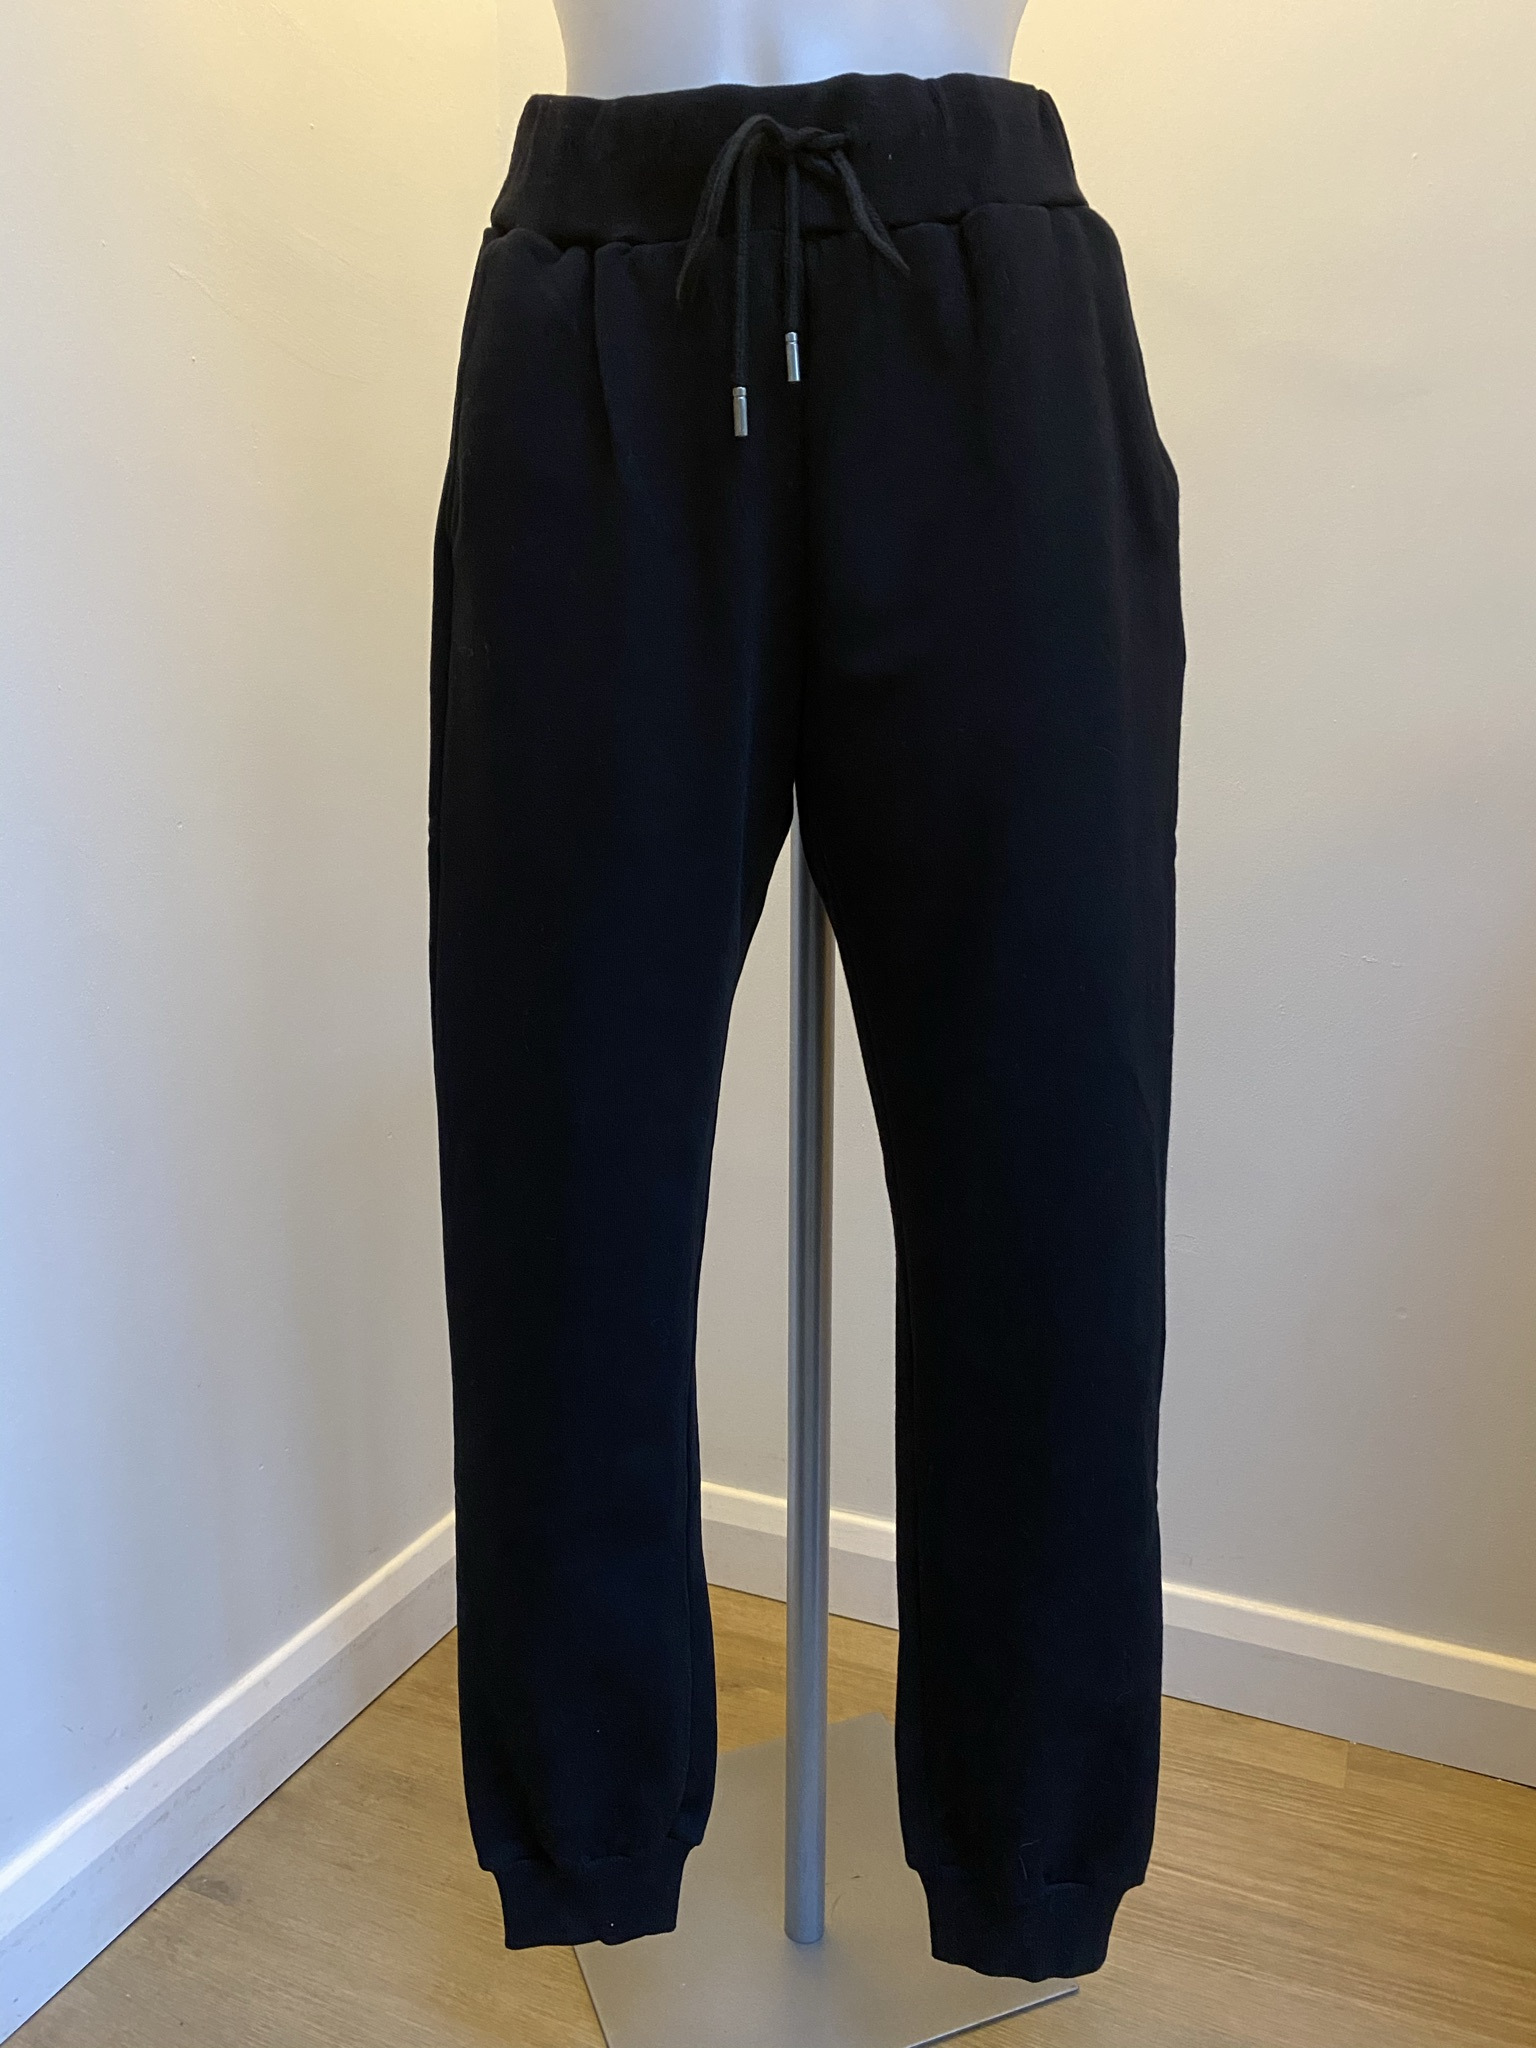 Joggers with Star motif - Available in 2 Colours